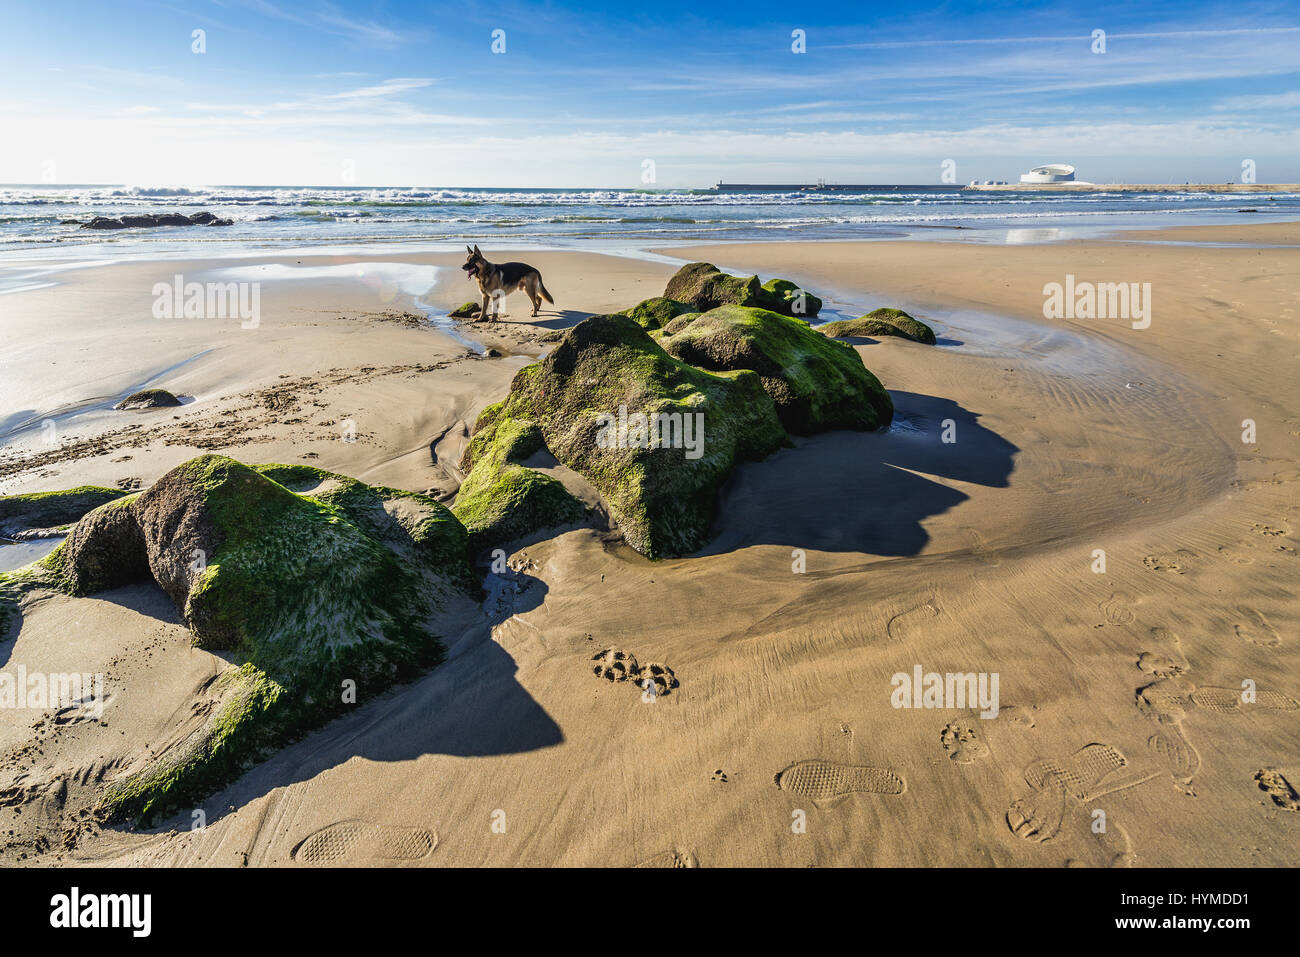 Mossy rocks on the beach of Nevogilde civil parish in Porto, second largest city in Portugal Stock Photo